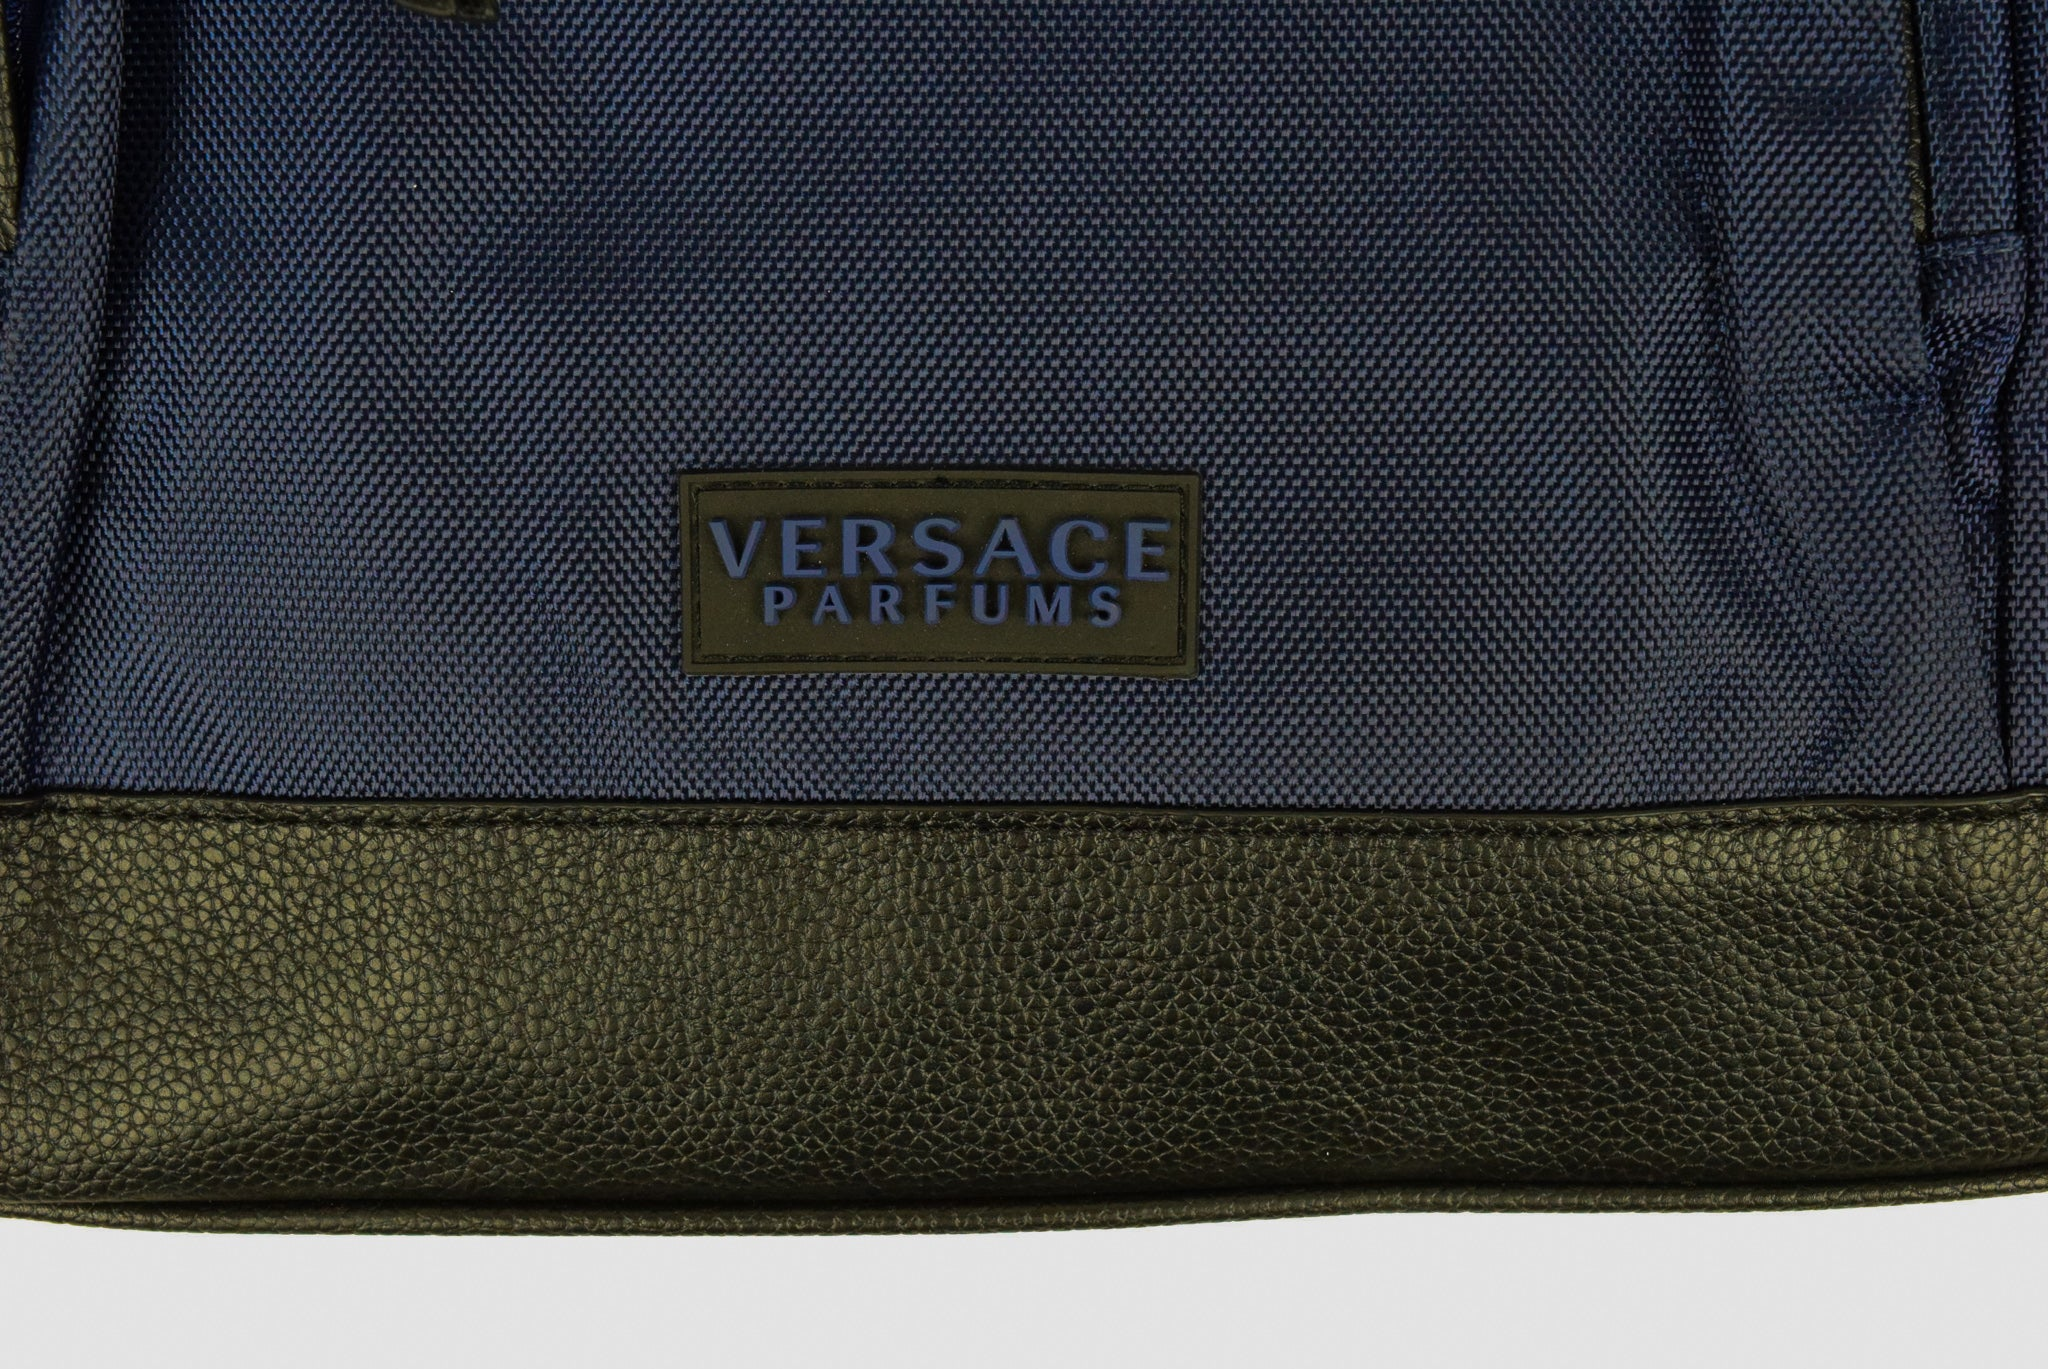 Versace 2-Way Backpack and Tote Bag